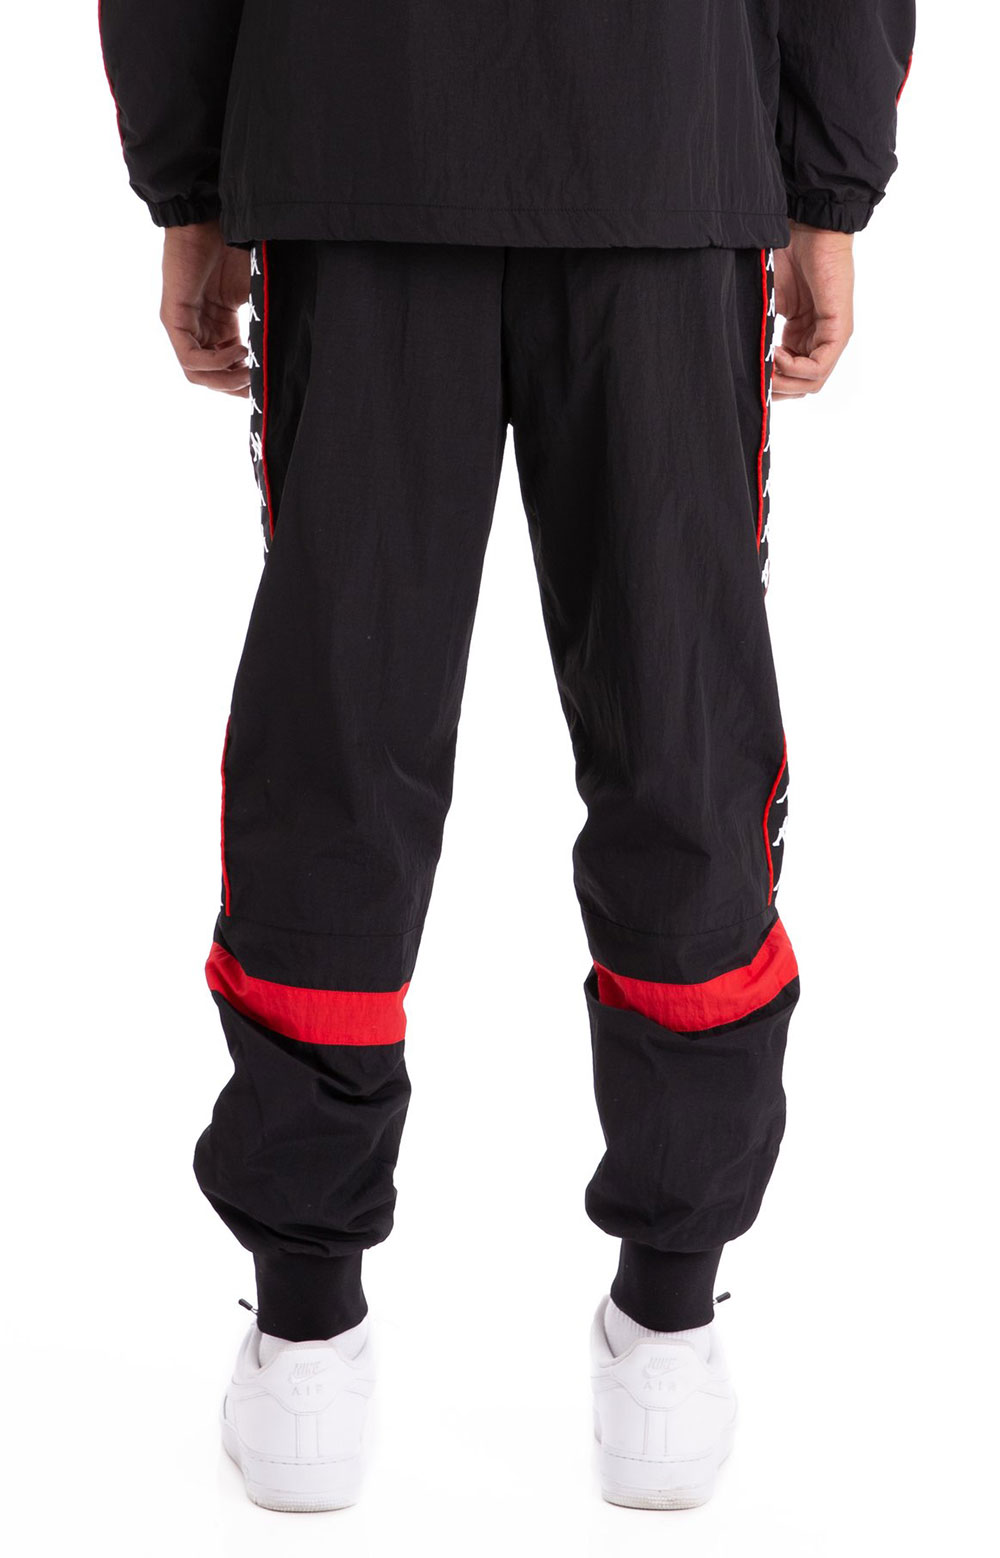 222 Banda Braka Woven Pants - Black/Red 3